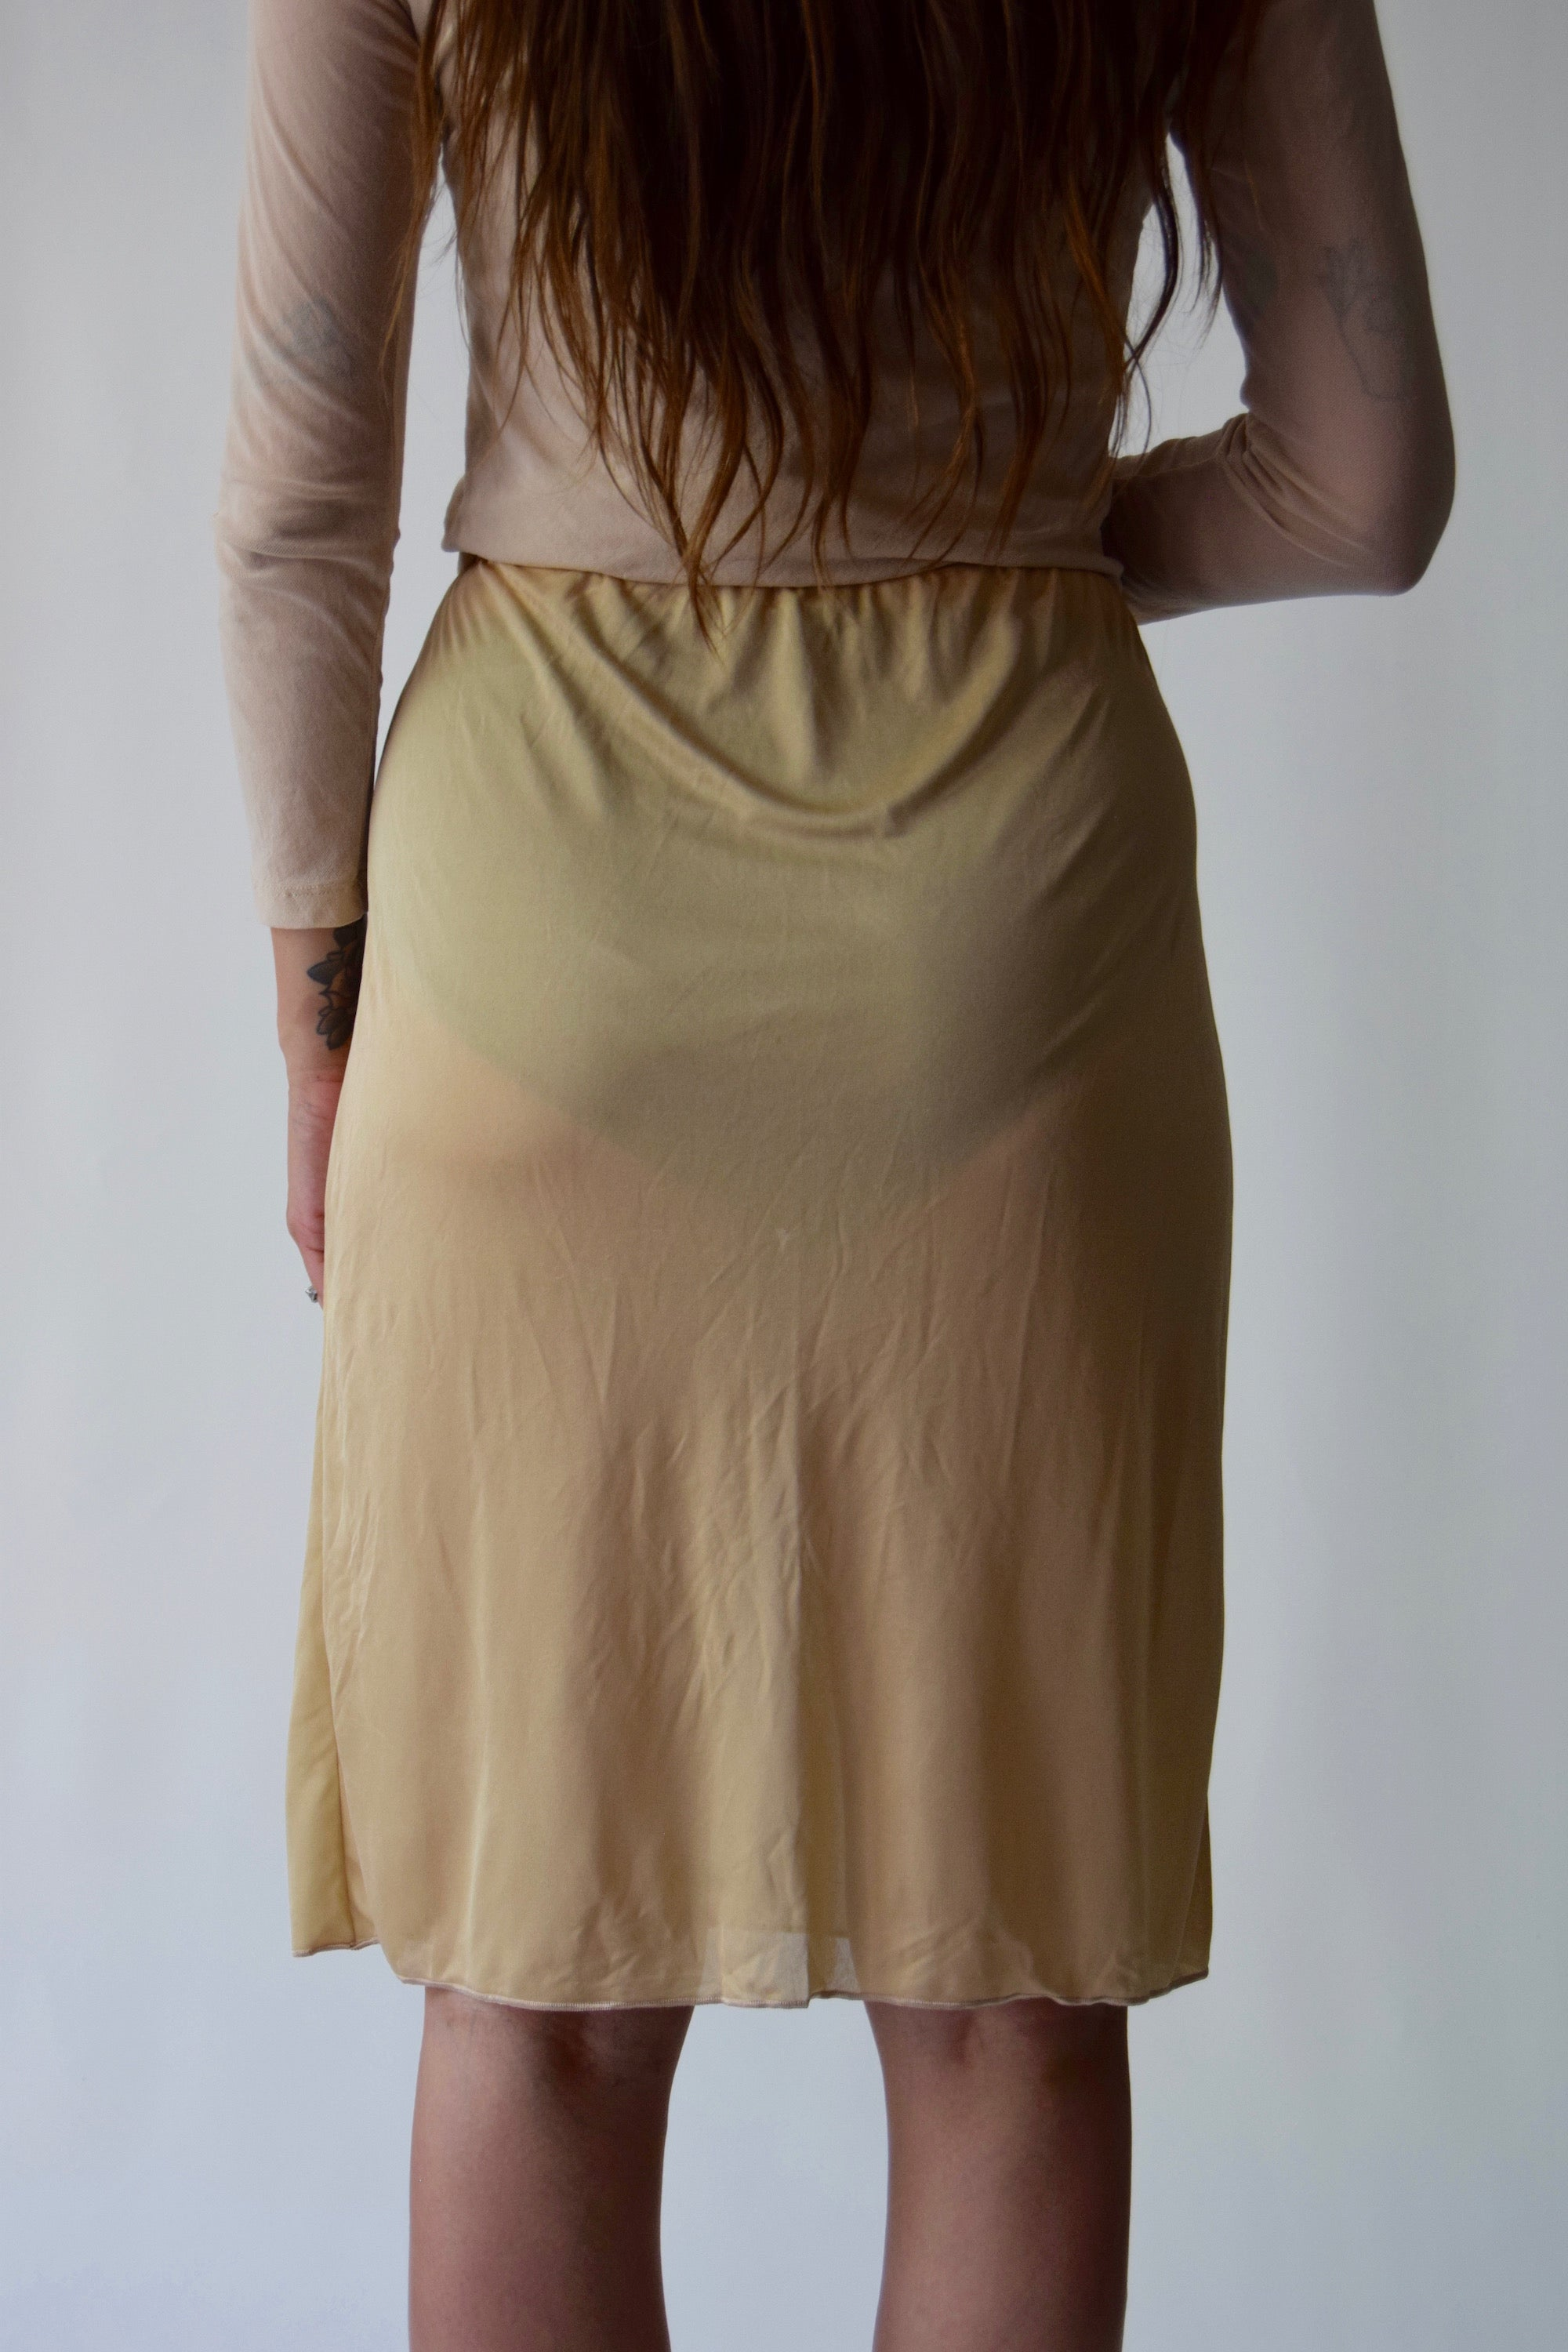 Sheer Butter Designer Missoni Skirt FREE SHIPPING TO THE U.S.